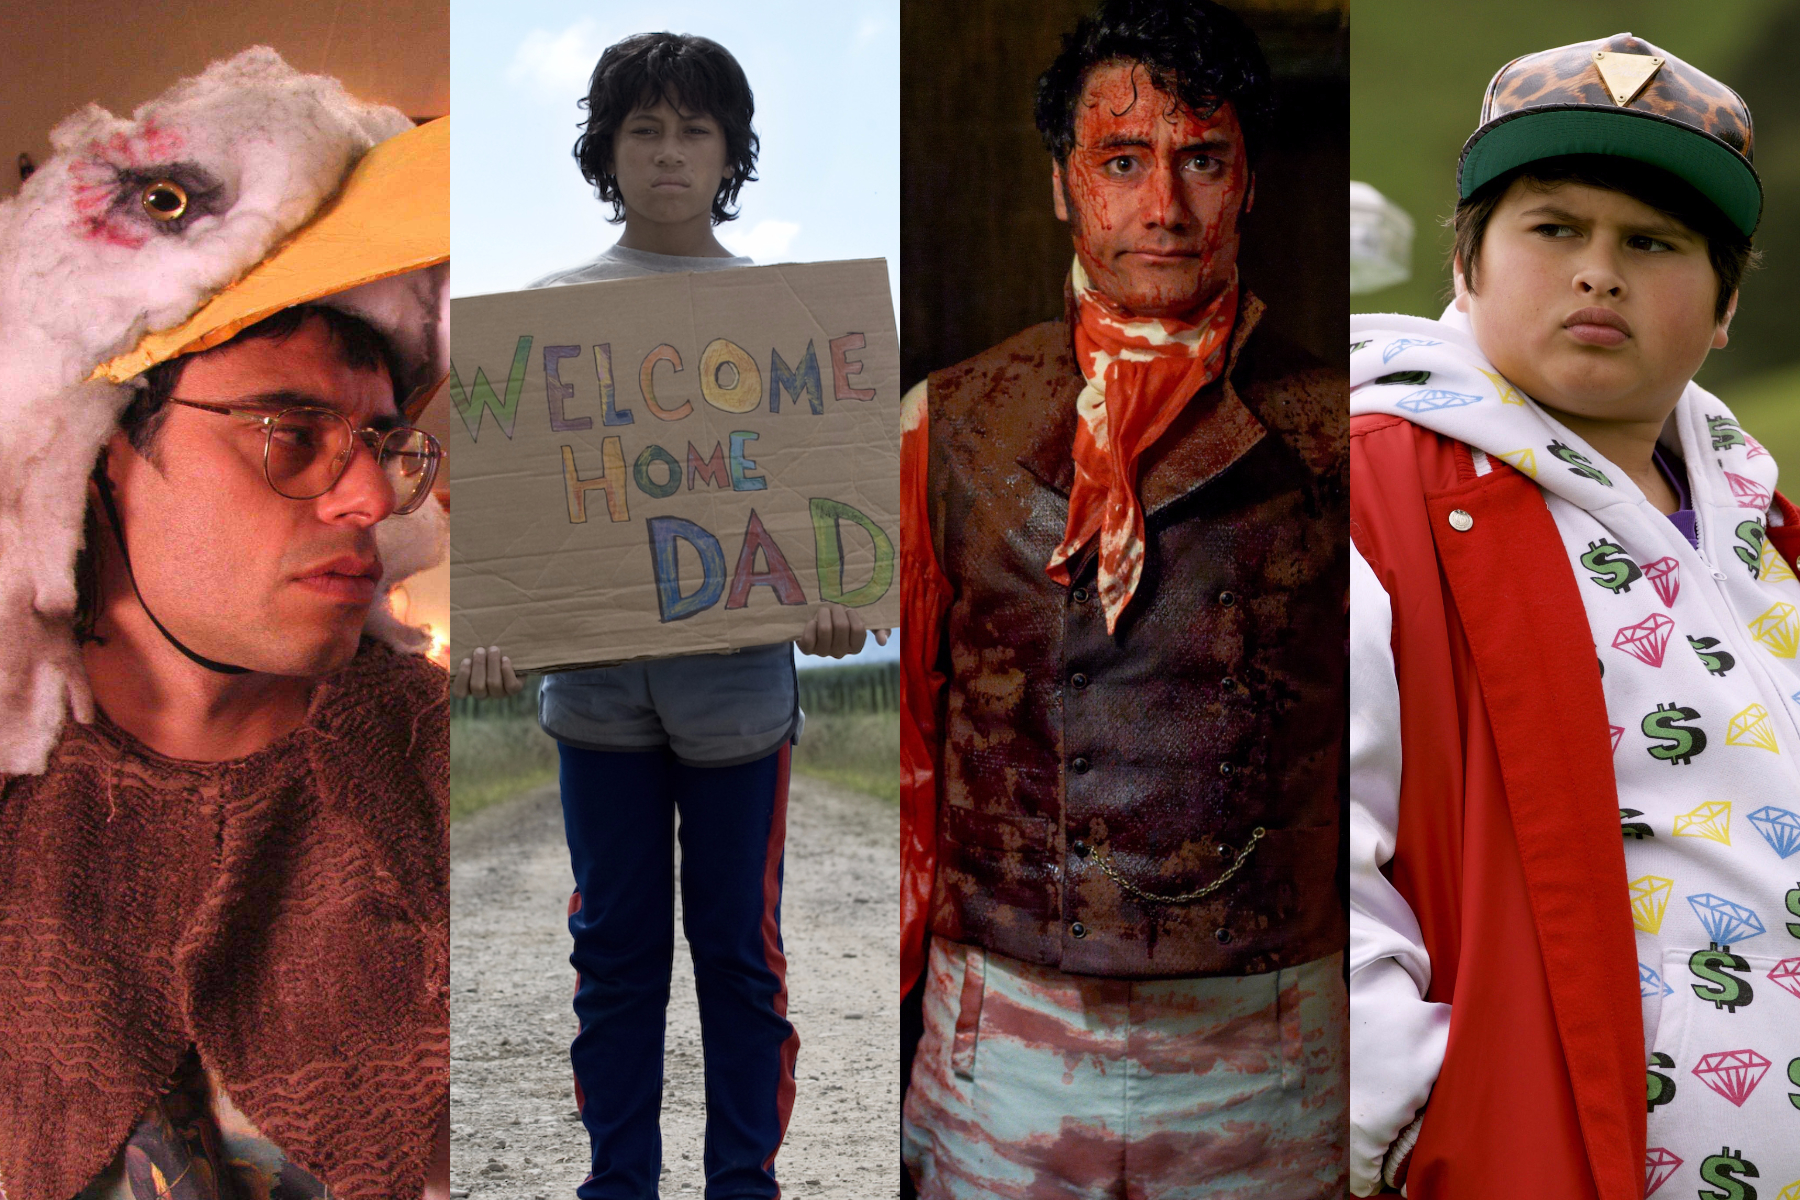 Get to know the films of Taika Waititi, the brilliantly funny director of Jojo Rabbit